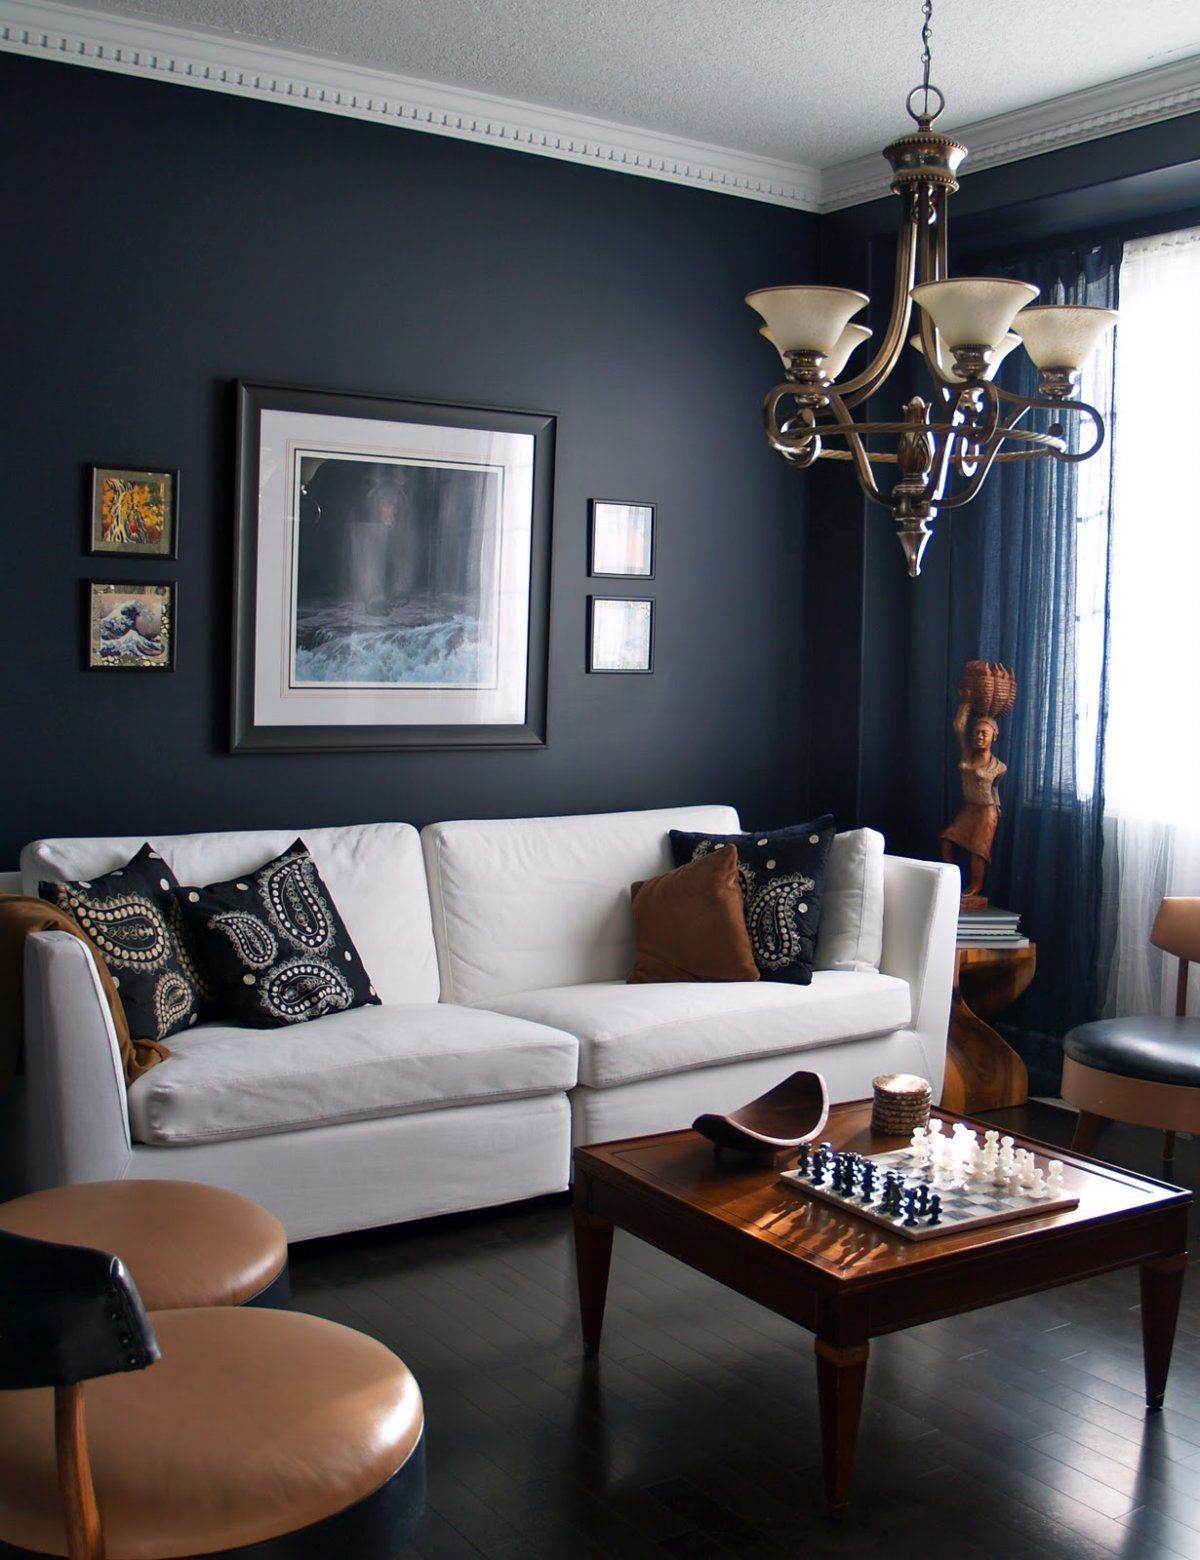 15 beautiful dark blue wall design ideas | navy blue walls, white